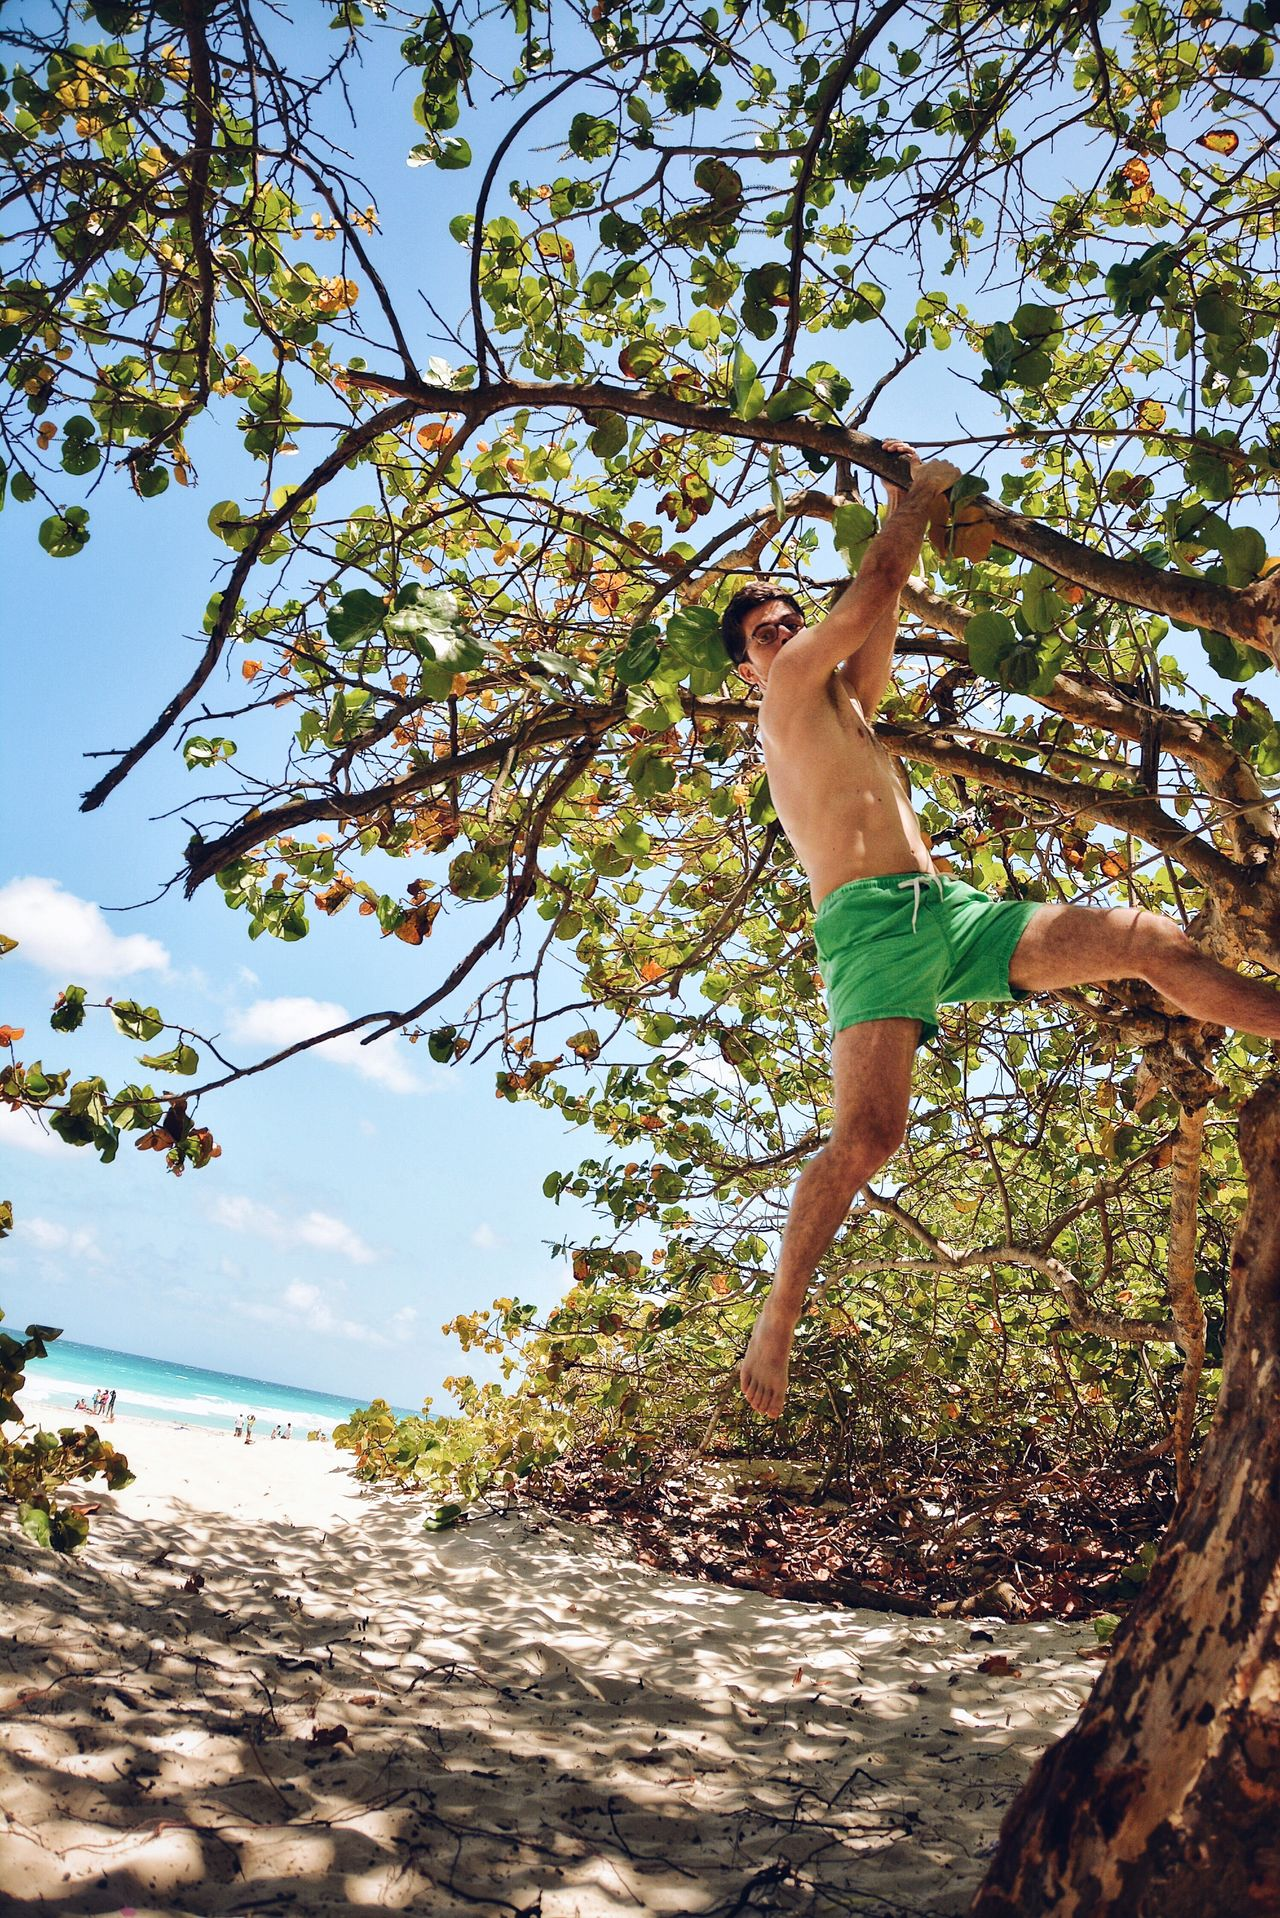 Monkey on a Tree. Healthy Lifestyle Rope Swing Outdoors Beauty In Nature Climbing Climbing Trees Tree Forest Tropical People Enjoying Life Beach Like A Monkey Hanging Branch Beach Life By The Beach Summer